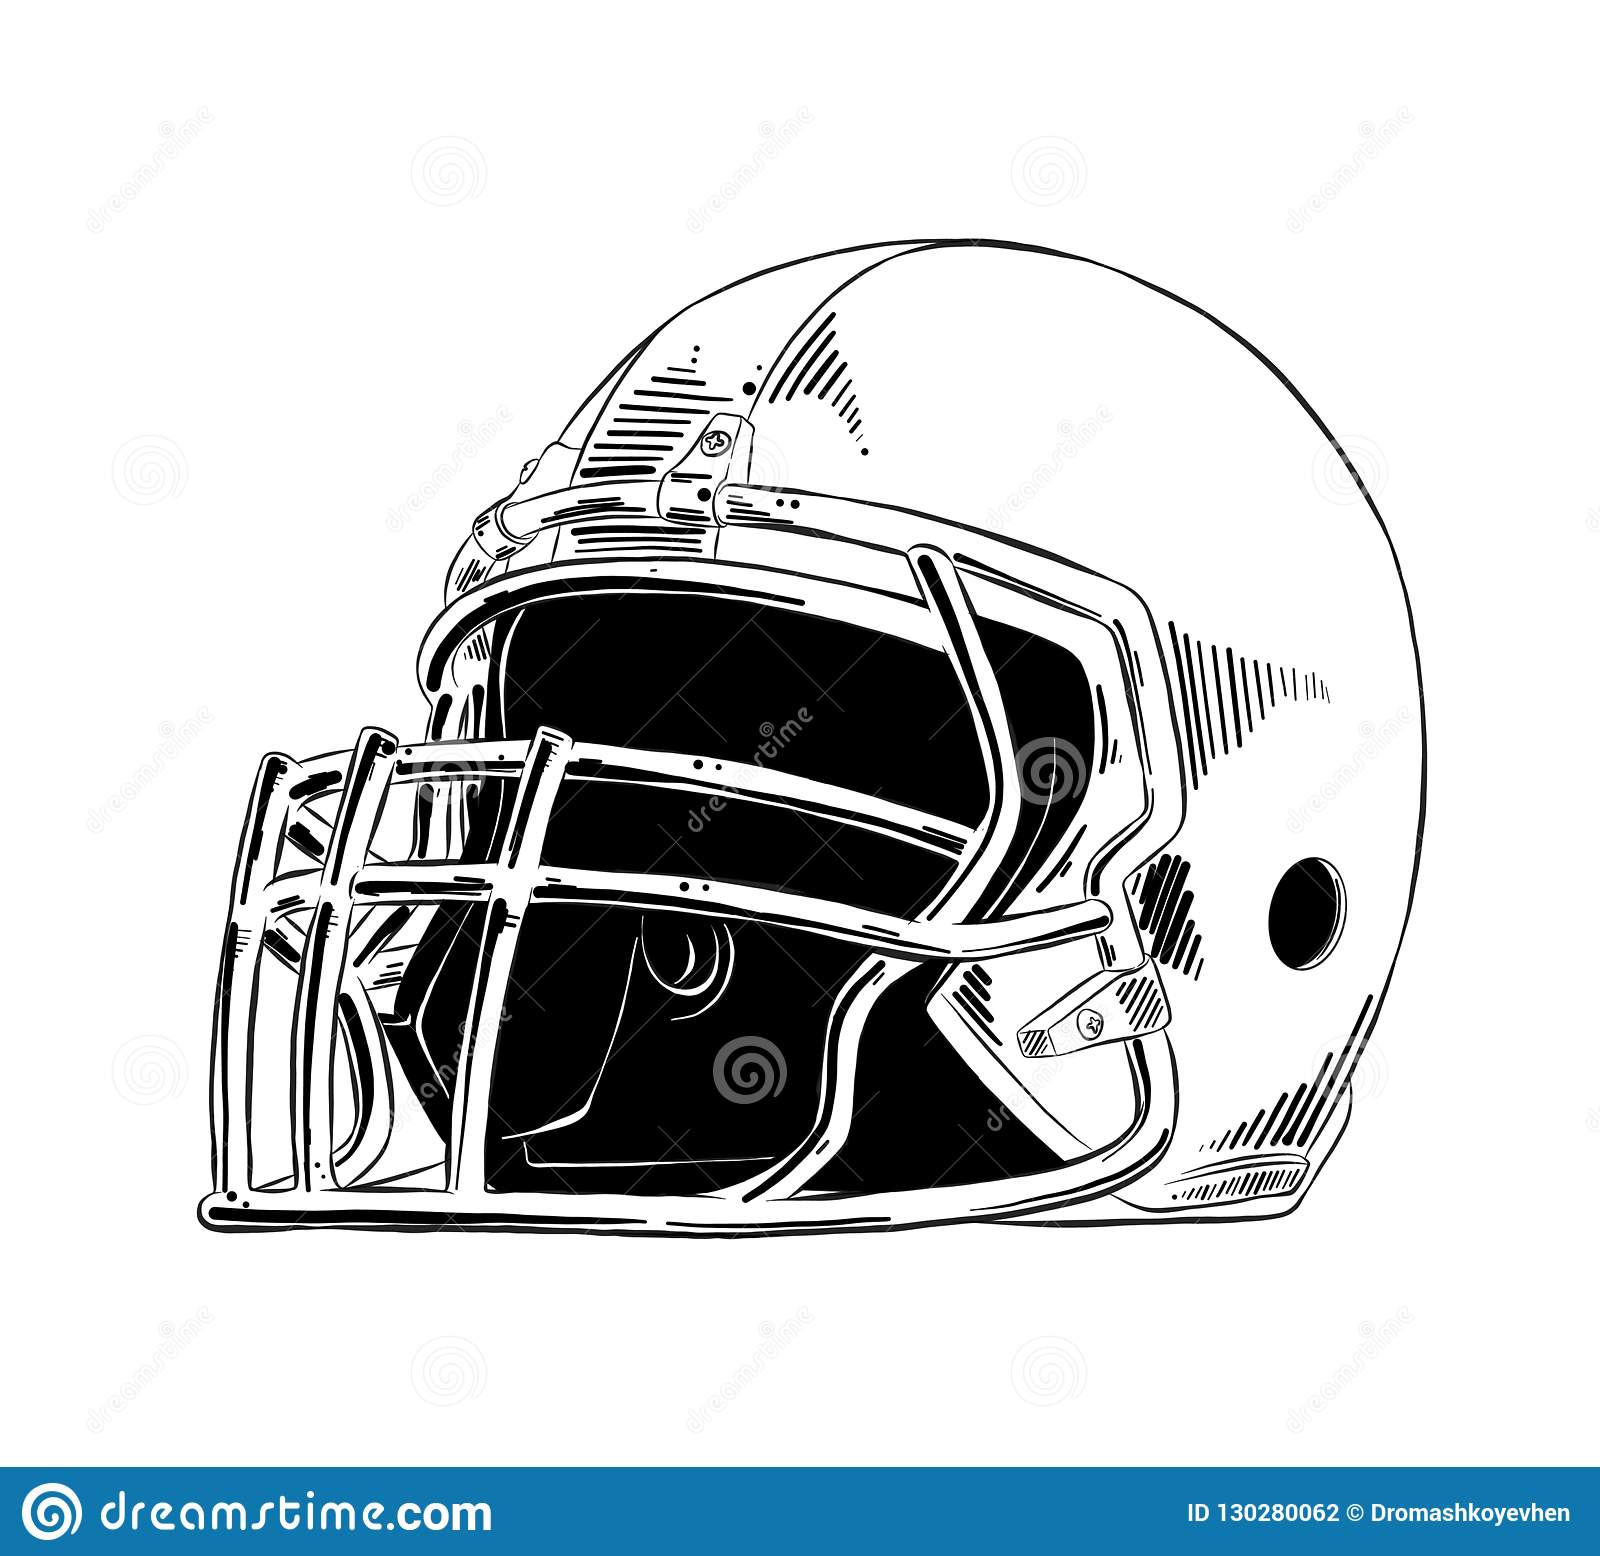 Hand Drawn Sketch Of American Football Helmet In Black Isolated On